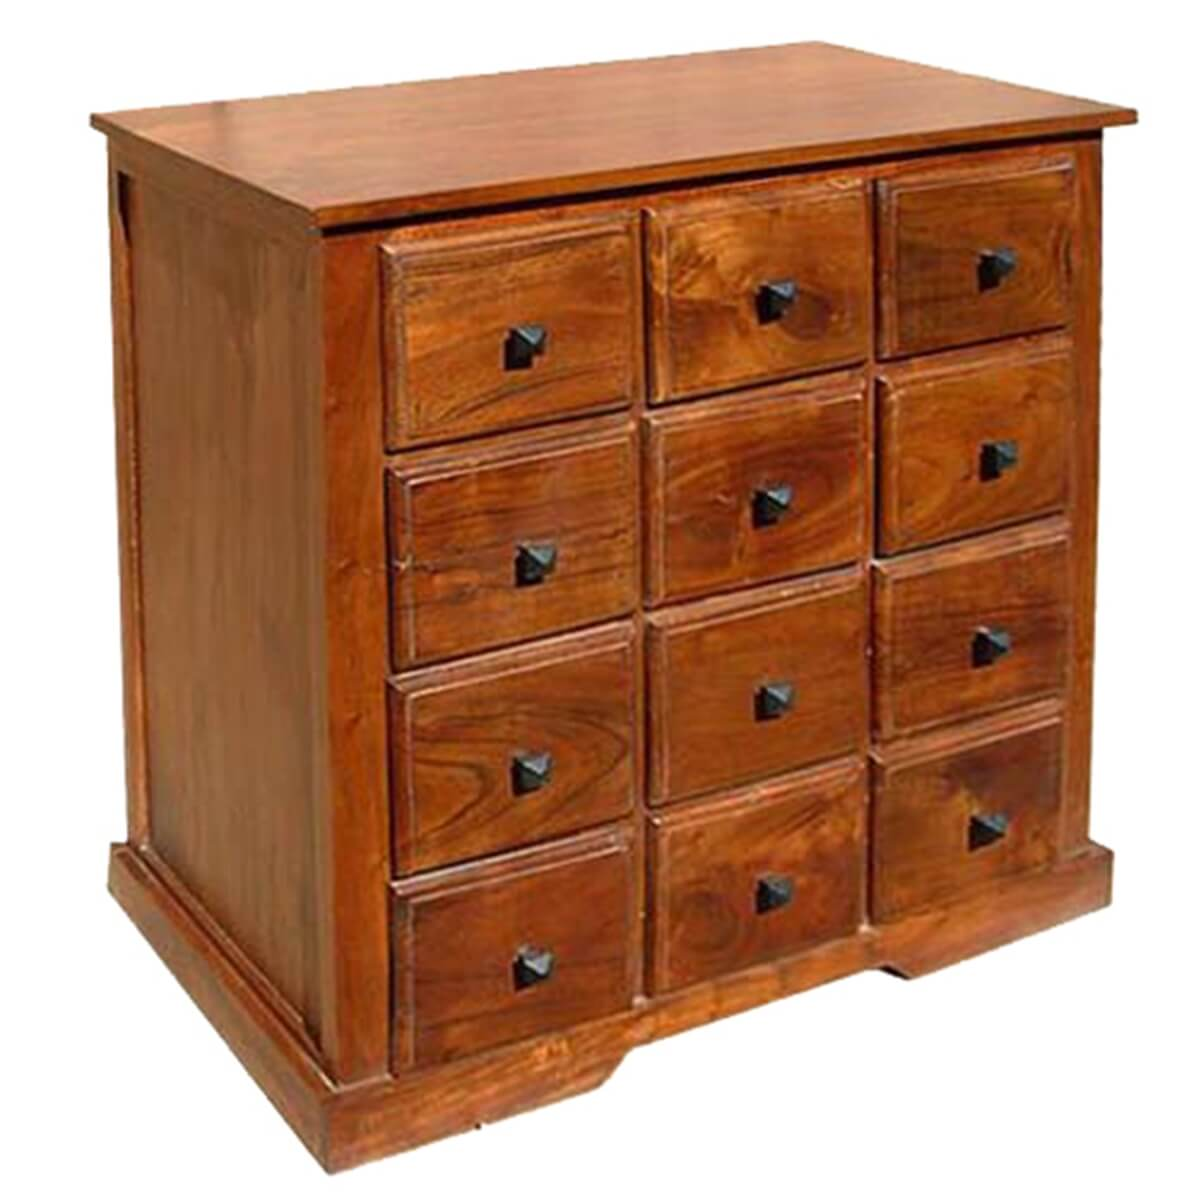 Wooden Drawers Handmade Wooden Bedroom Storage Dresser Chest With 12 Drawers